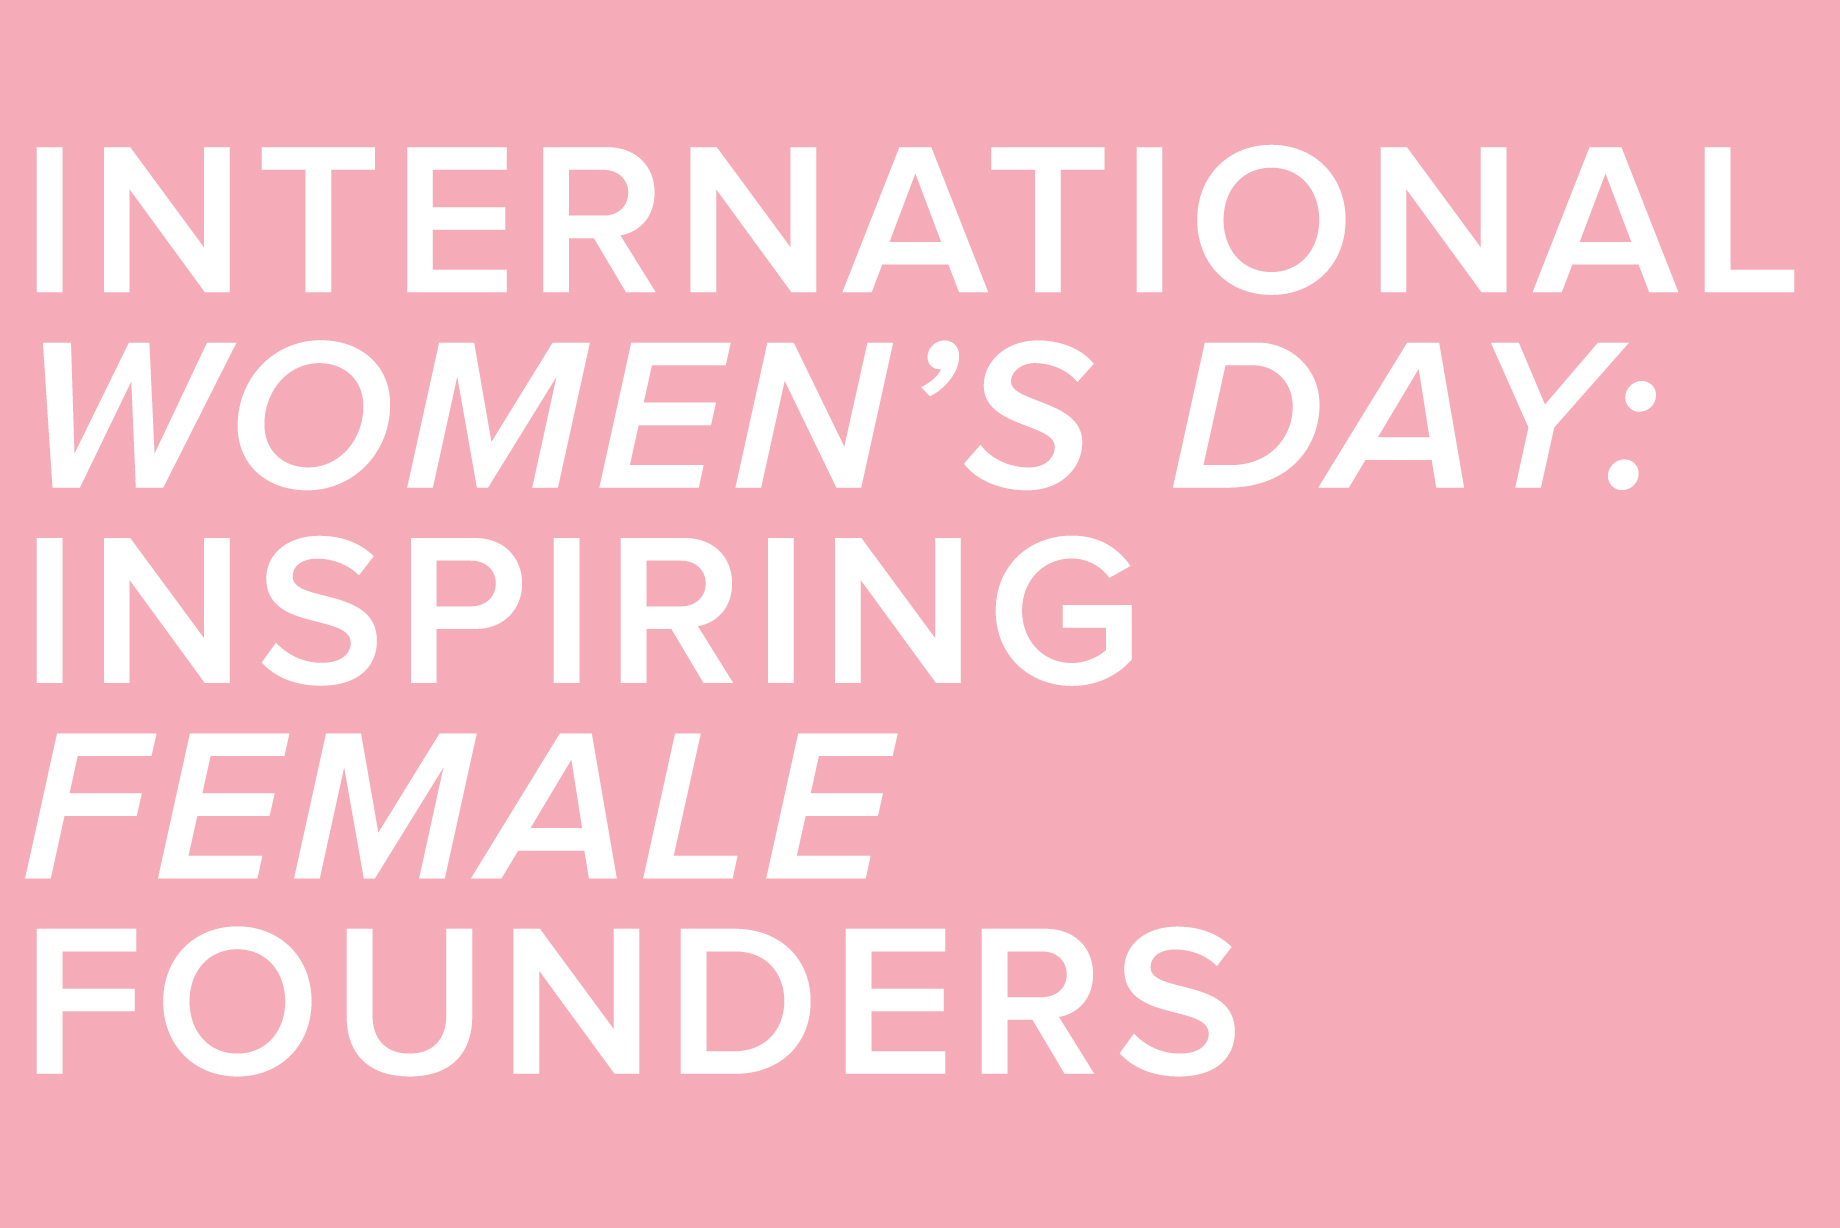 International Women's Day: Inspiring Female Founders